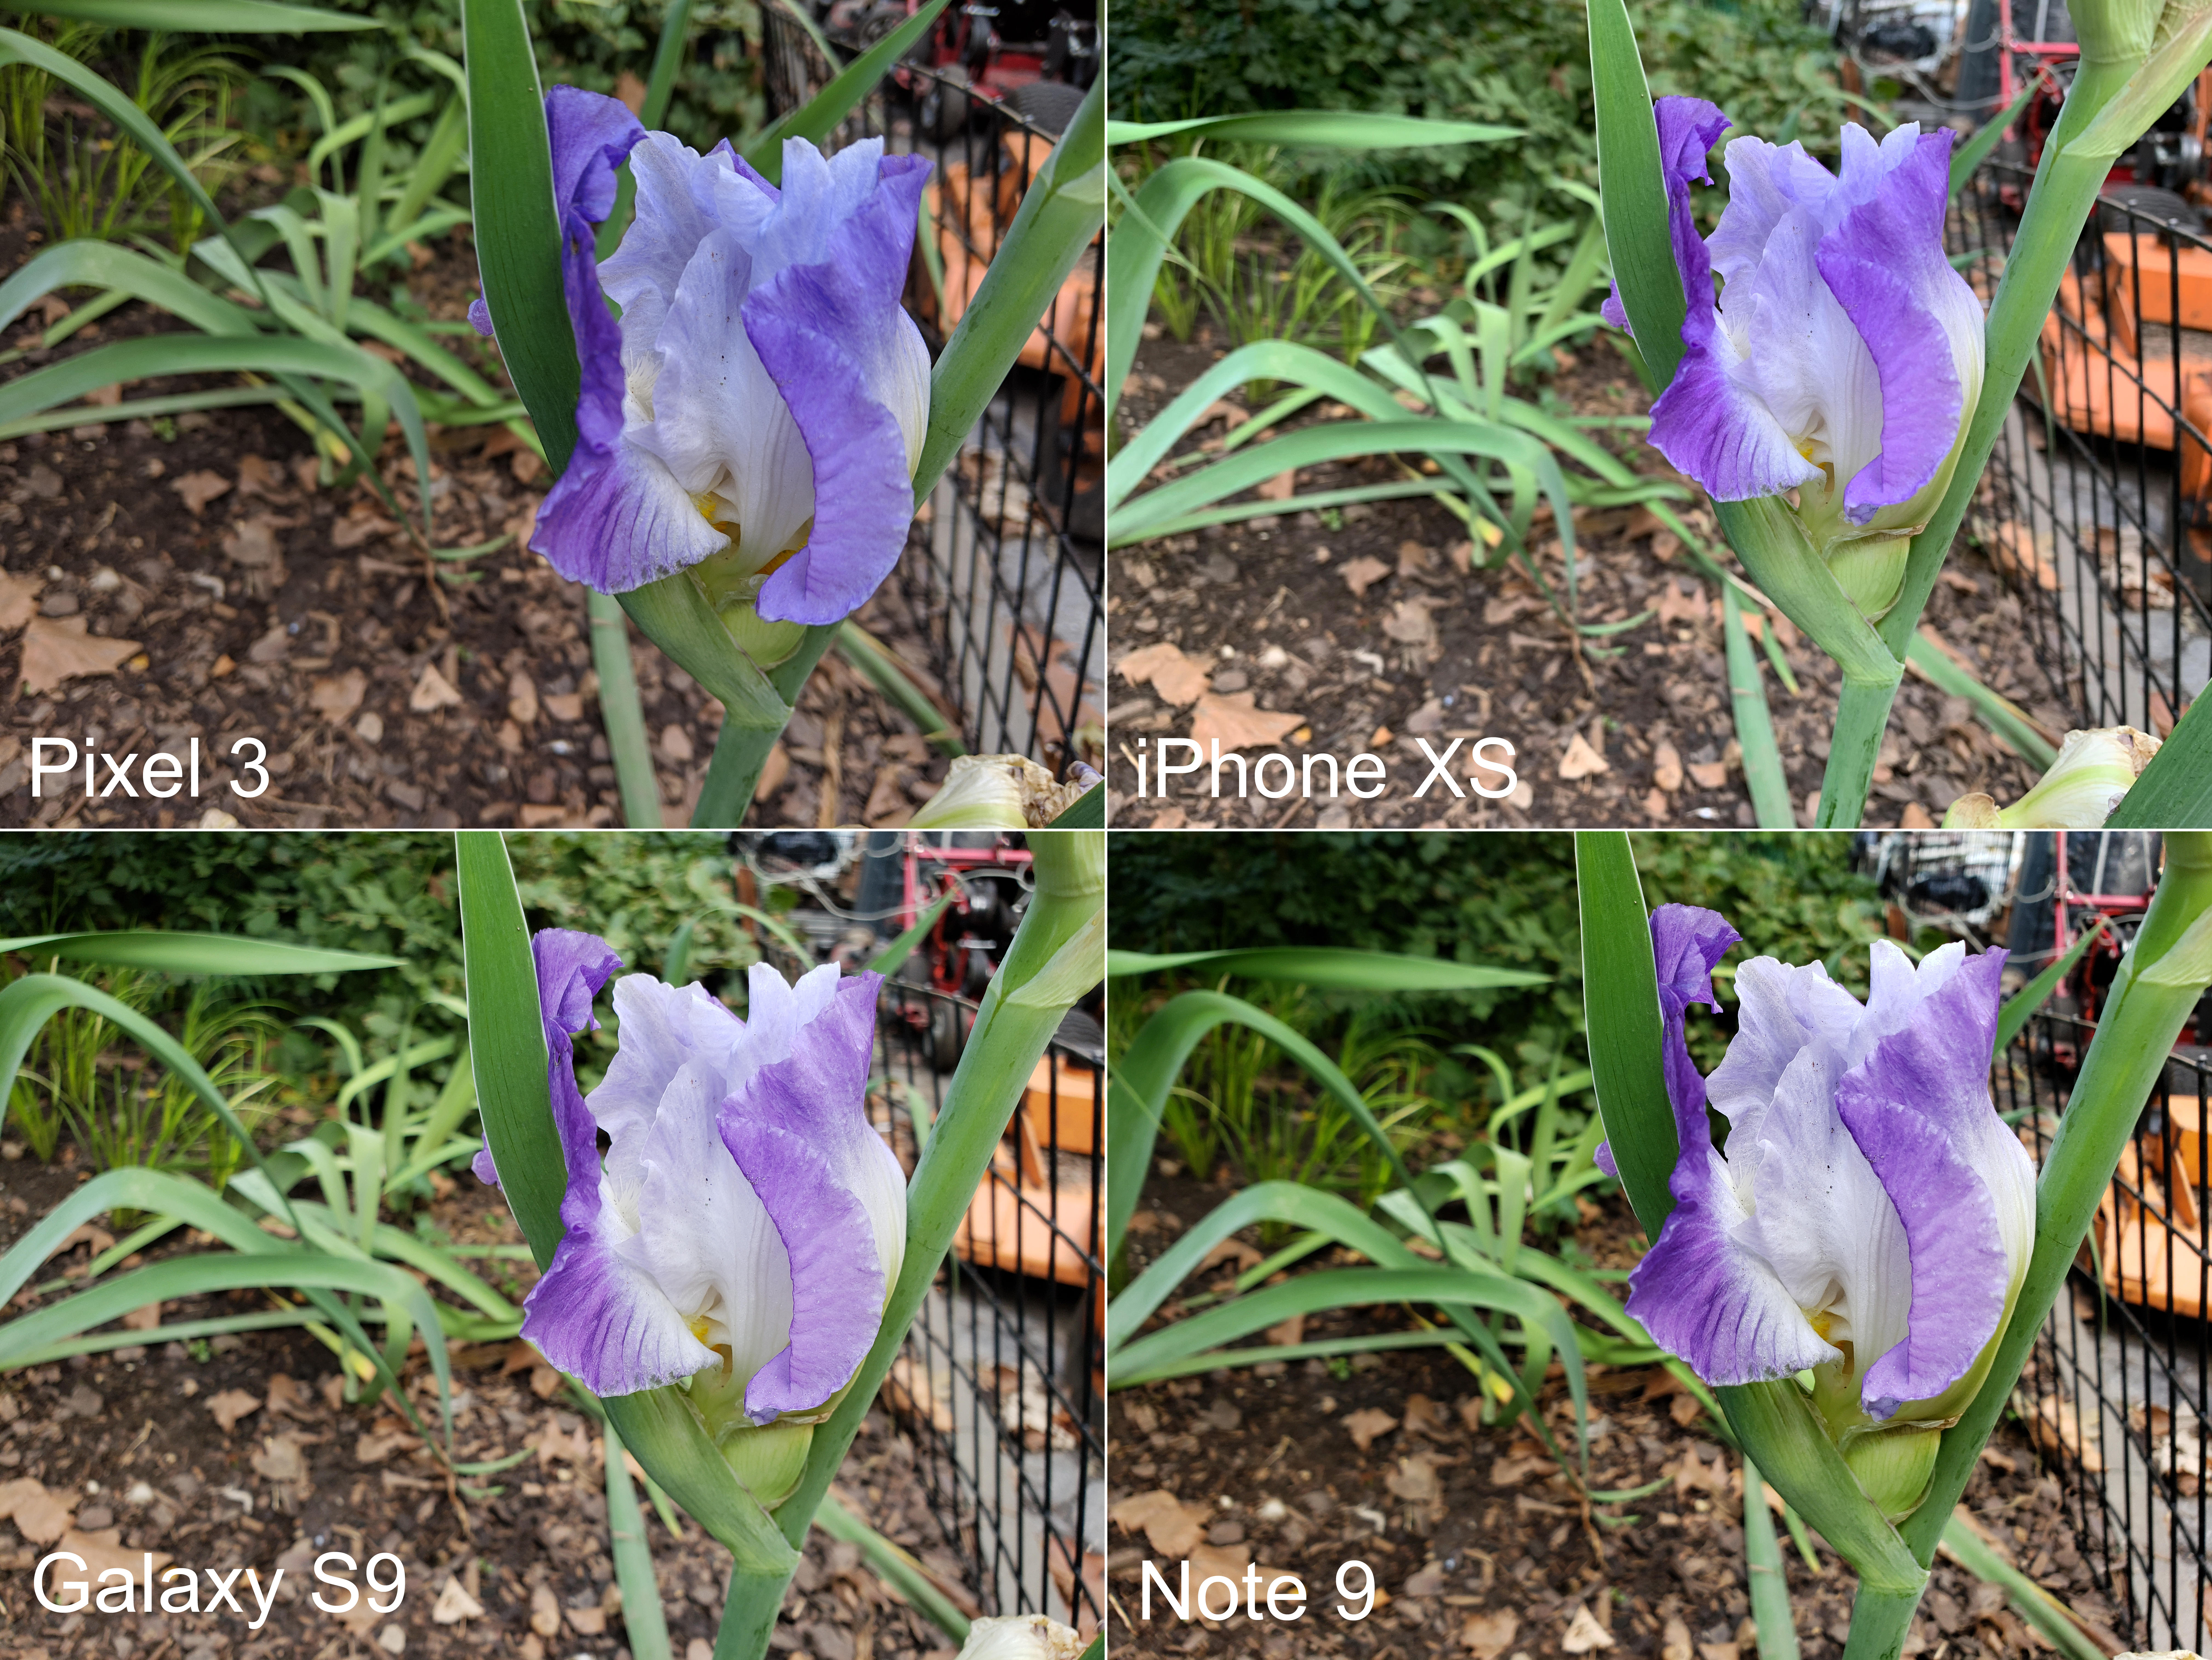 pixel-3-comparison-all-4-phones-flower